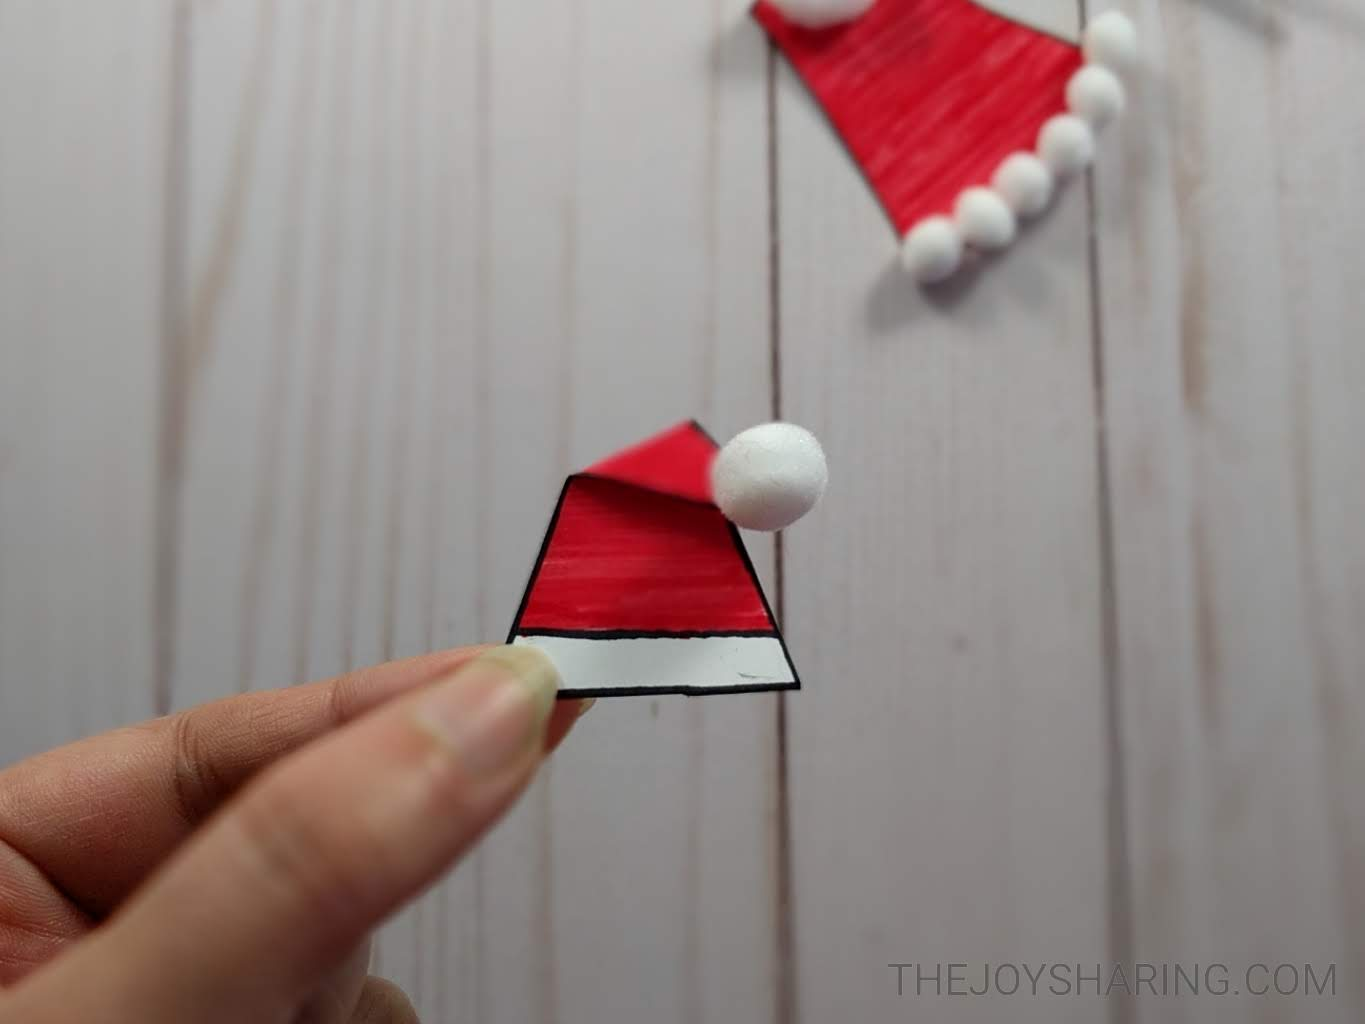 Spoon Grinch Christmas Ornament - The Joy of Sharing